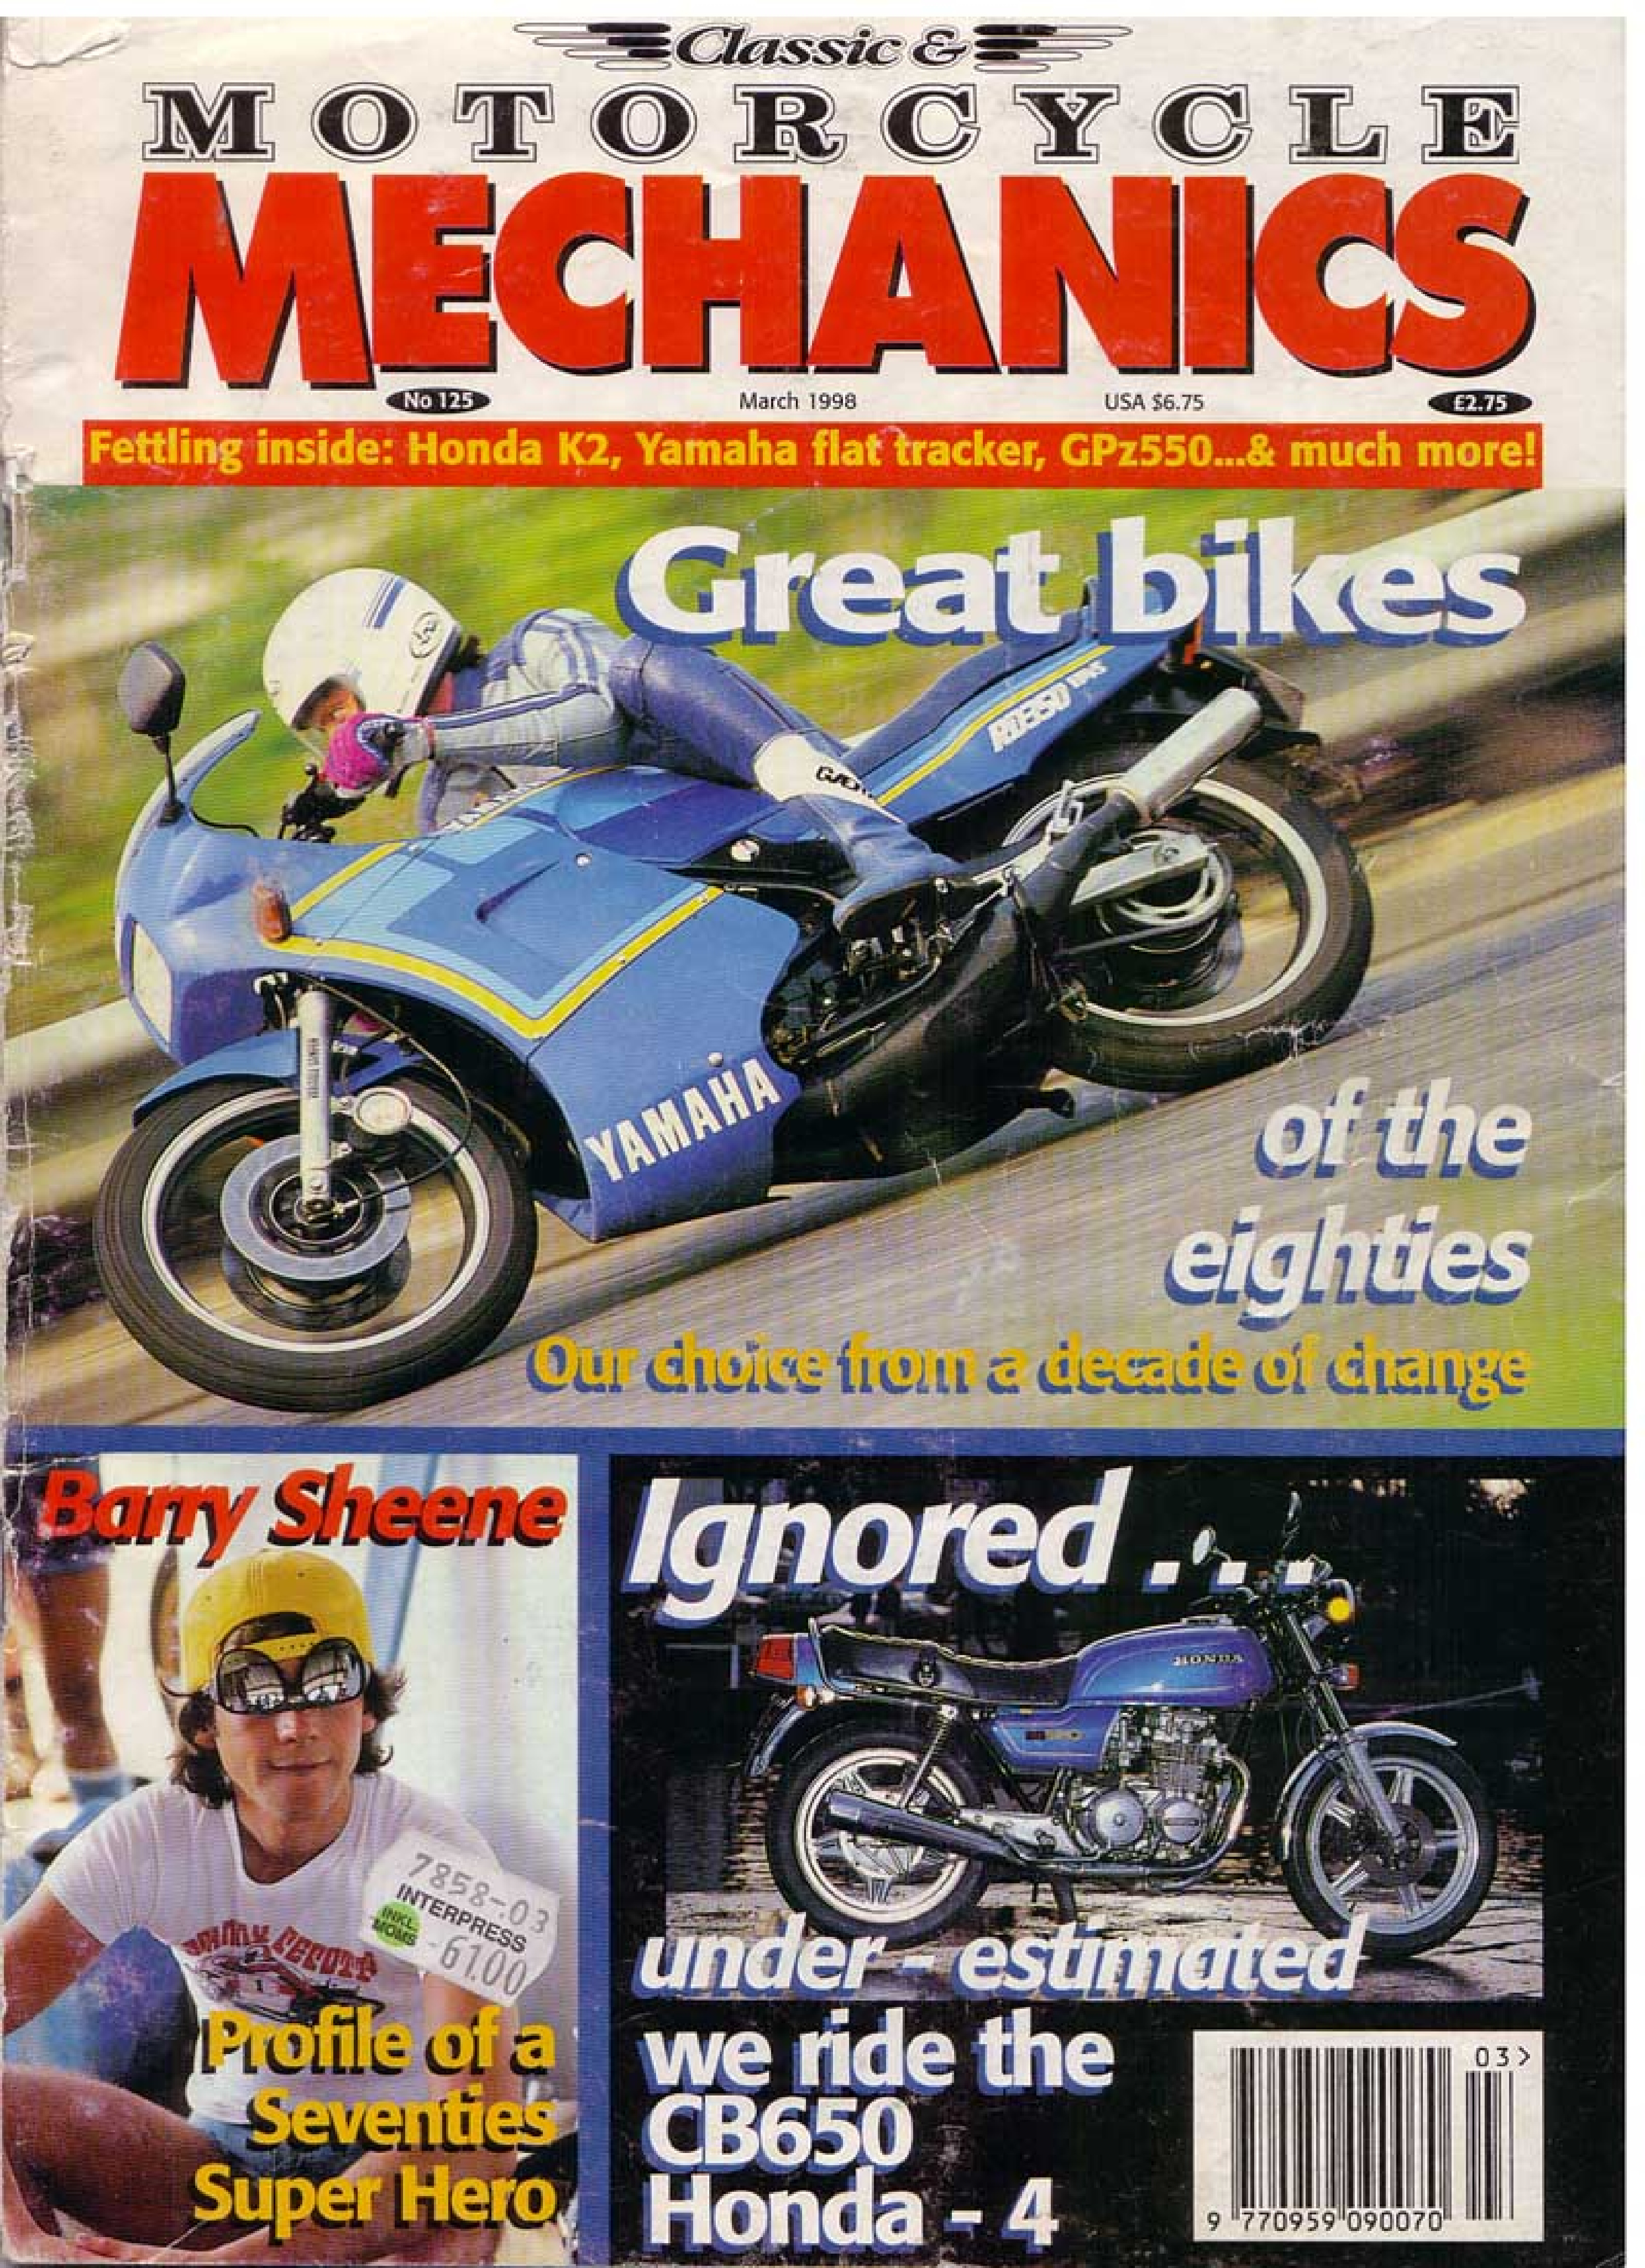 Motorcycle Mechanics about Honda CB650 (March 1988)